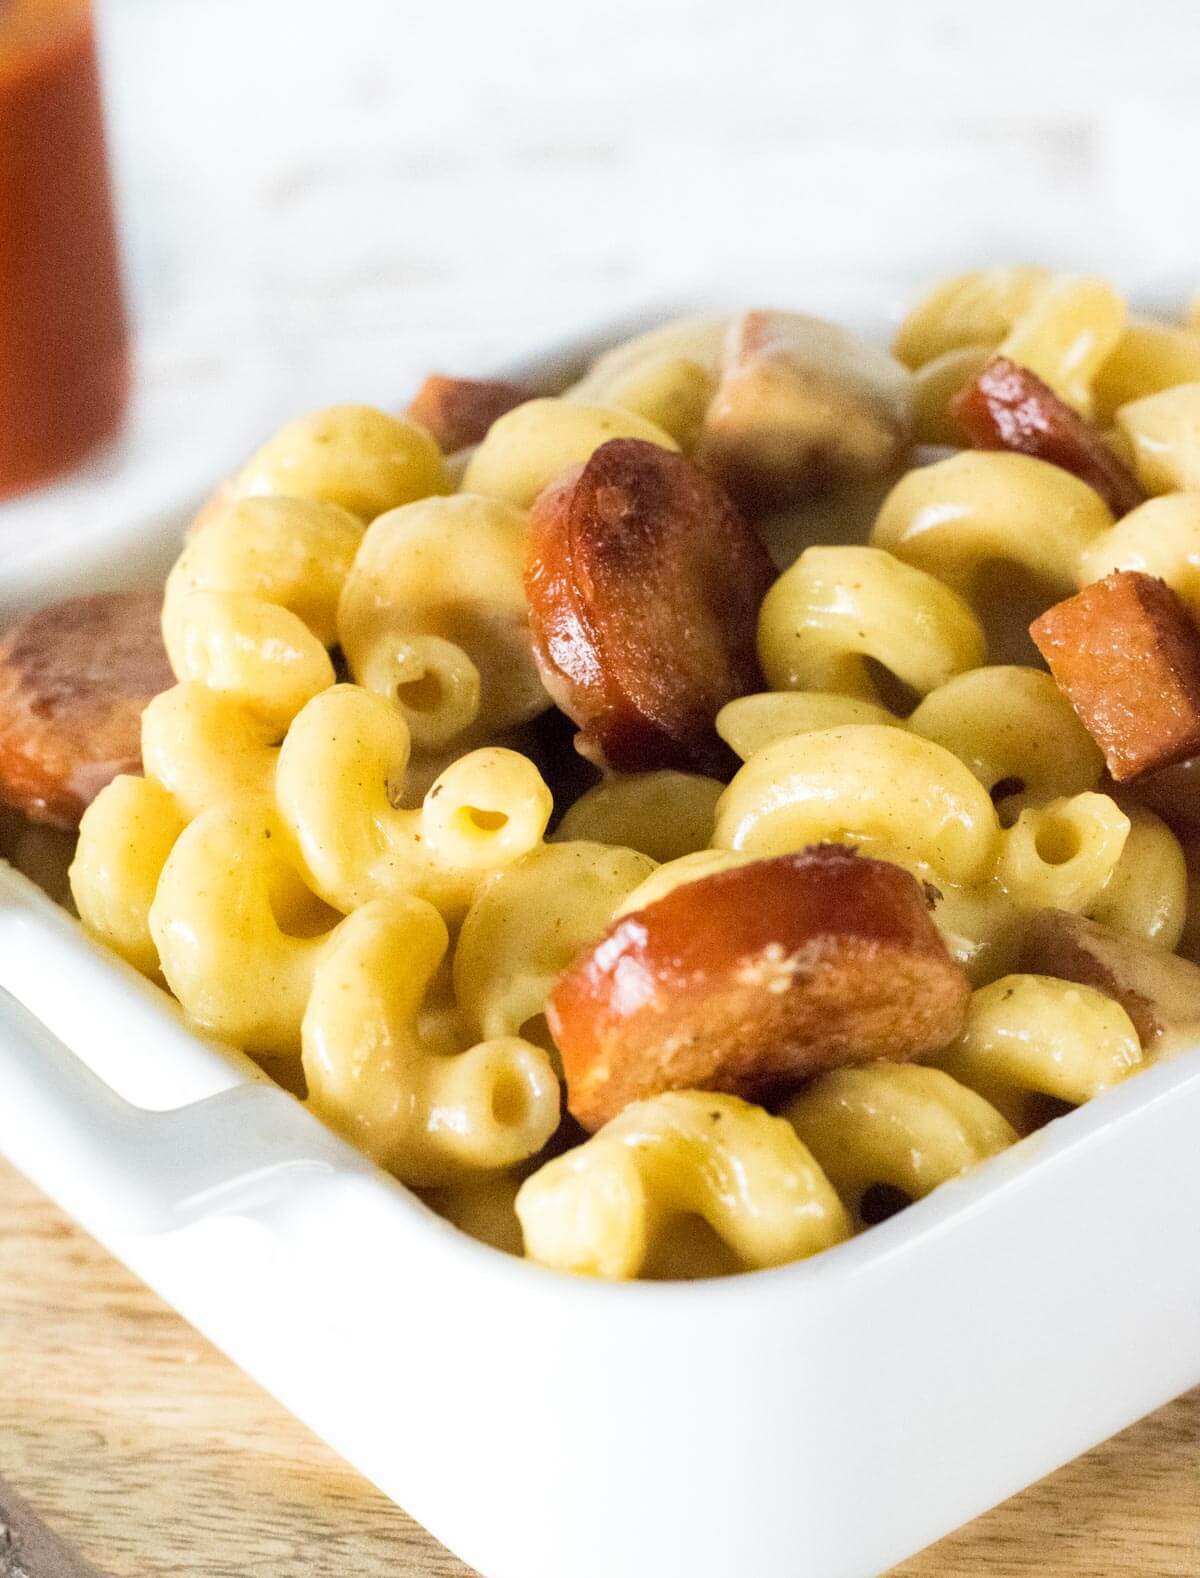 Mac and cheese with andouille sausage in a white dish.